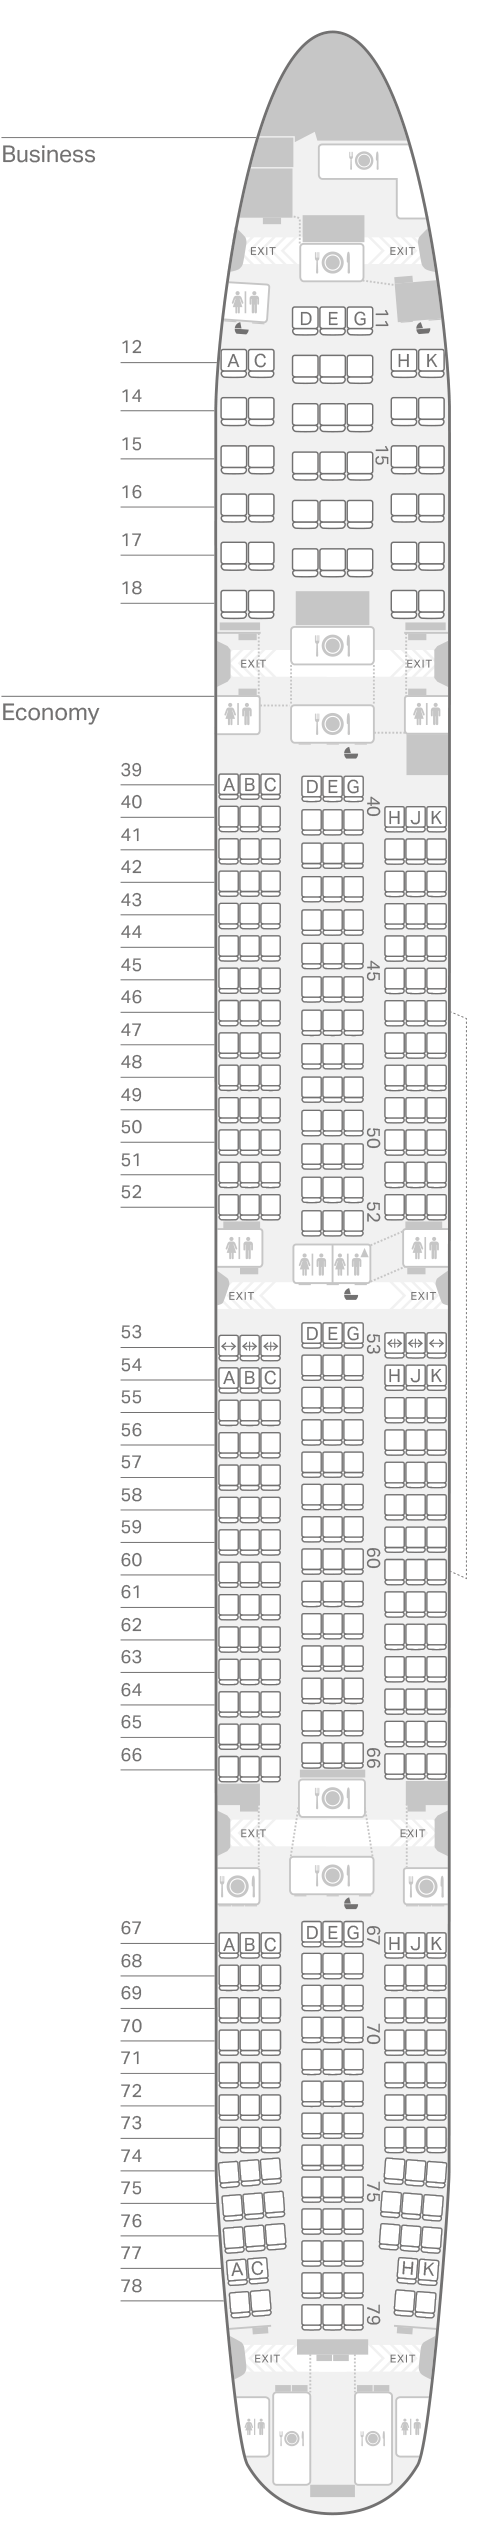 Cathay Pacific Seating Map 77w Www Microfinanceindia Org